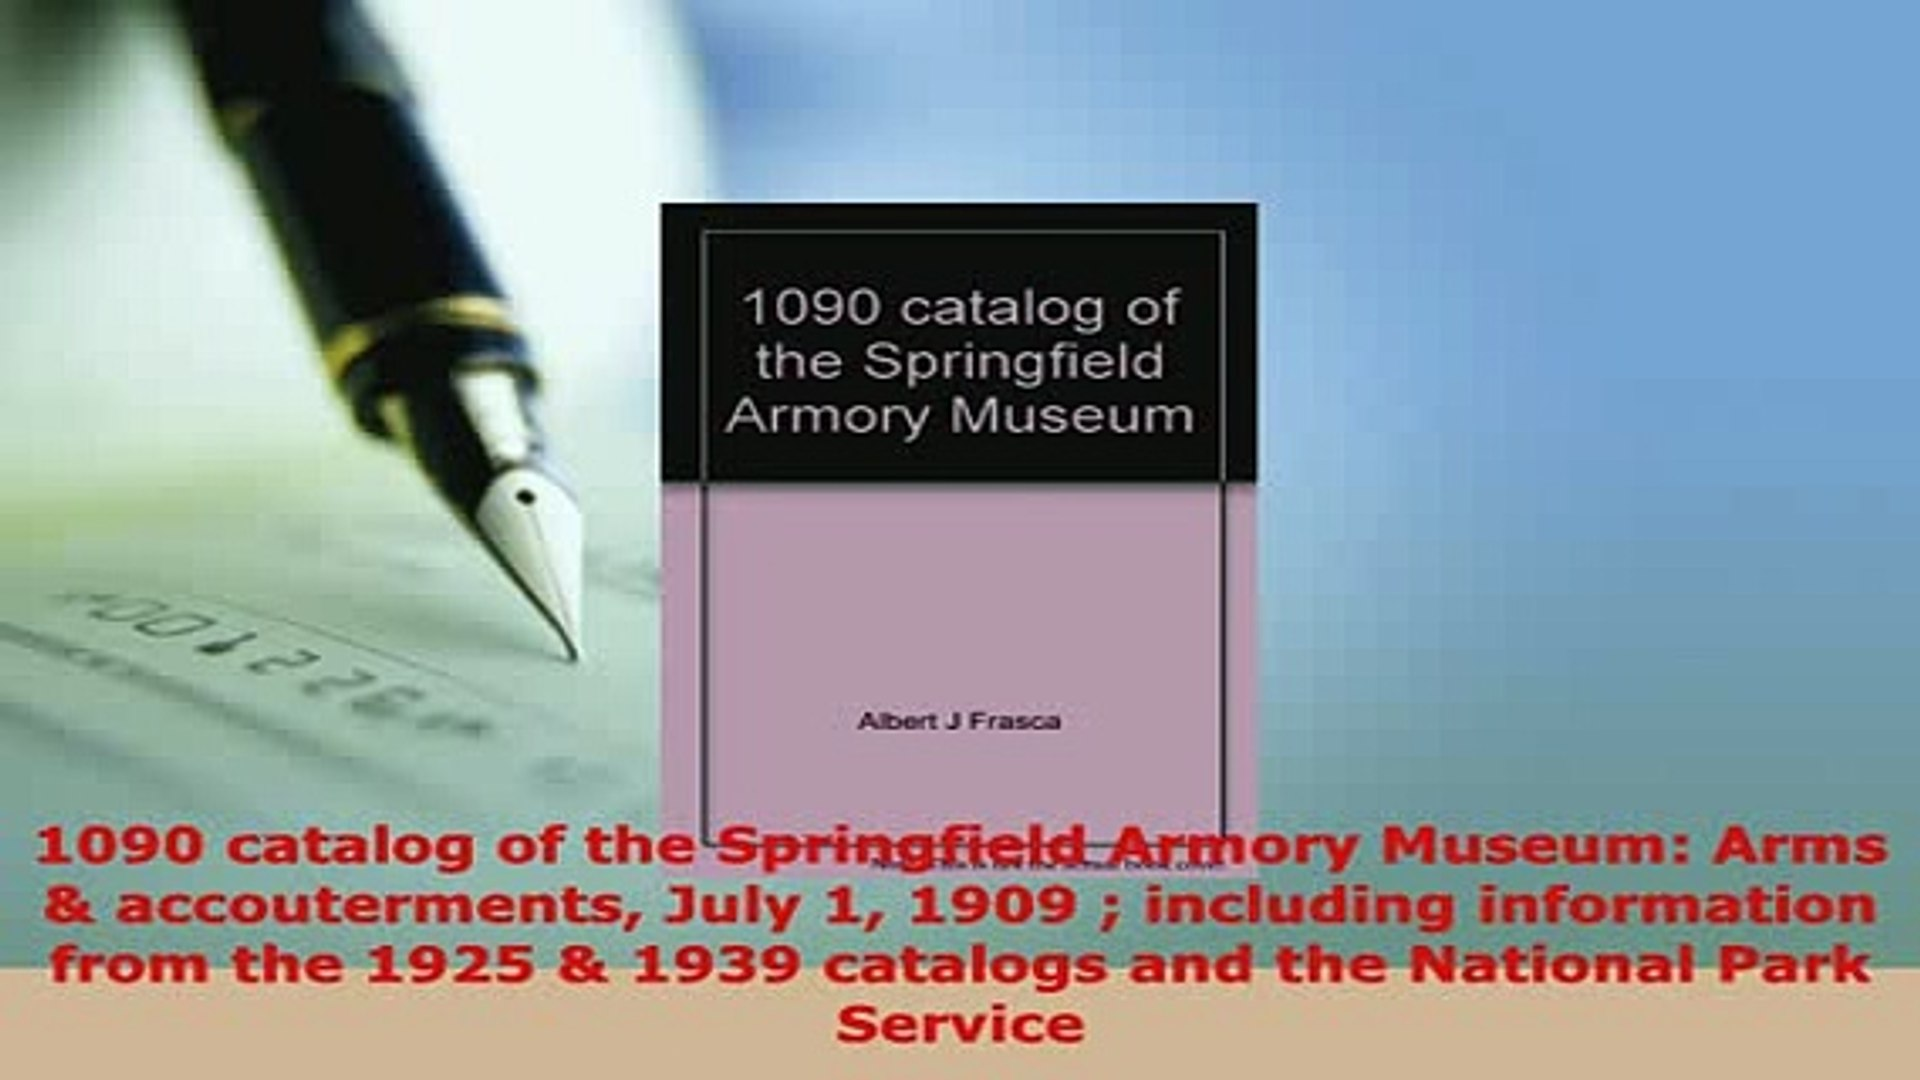 PDF  1090 catalog of the Springfield Armory Museum Arms  accouterments July 1 1909  including PDF Bo